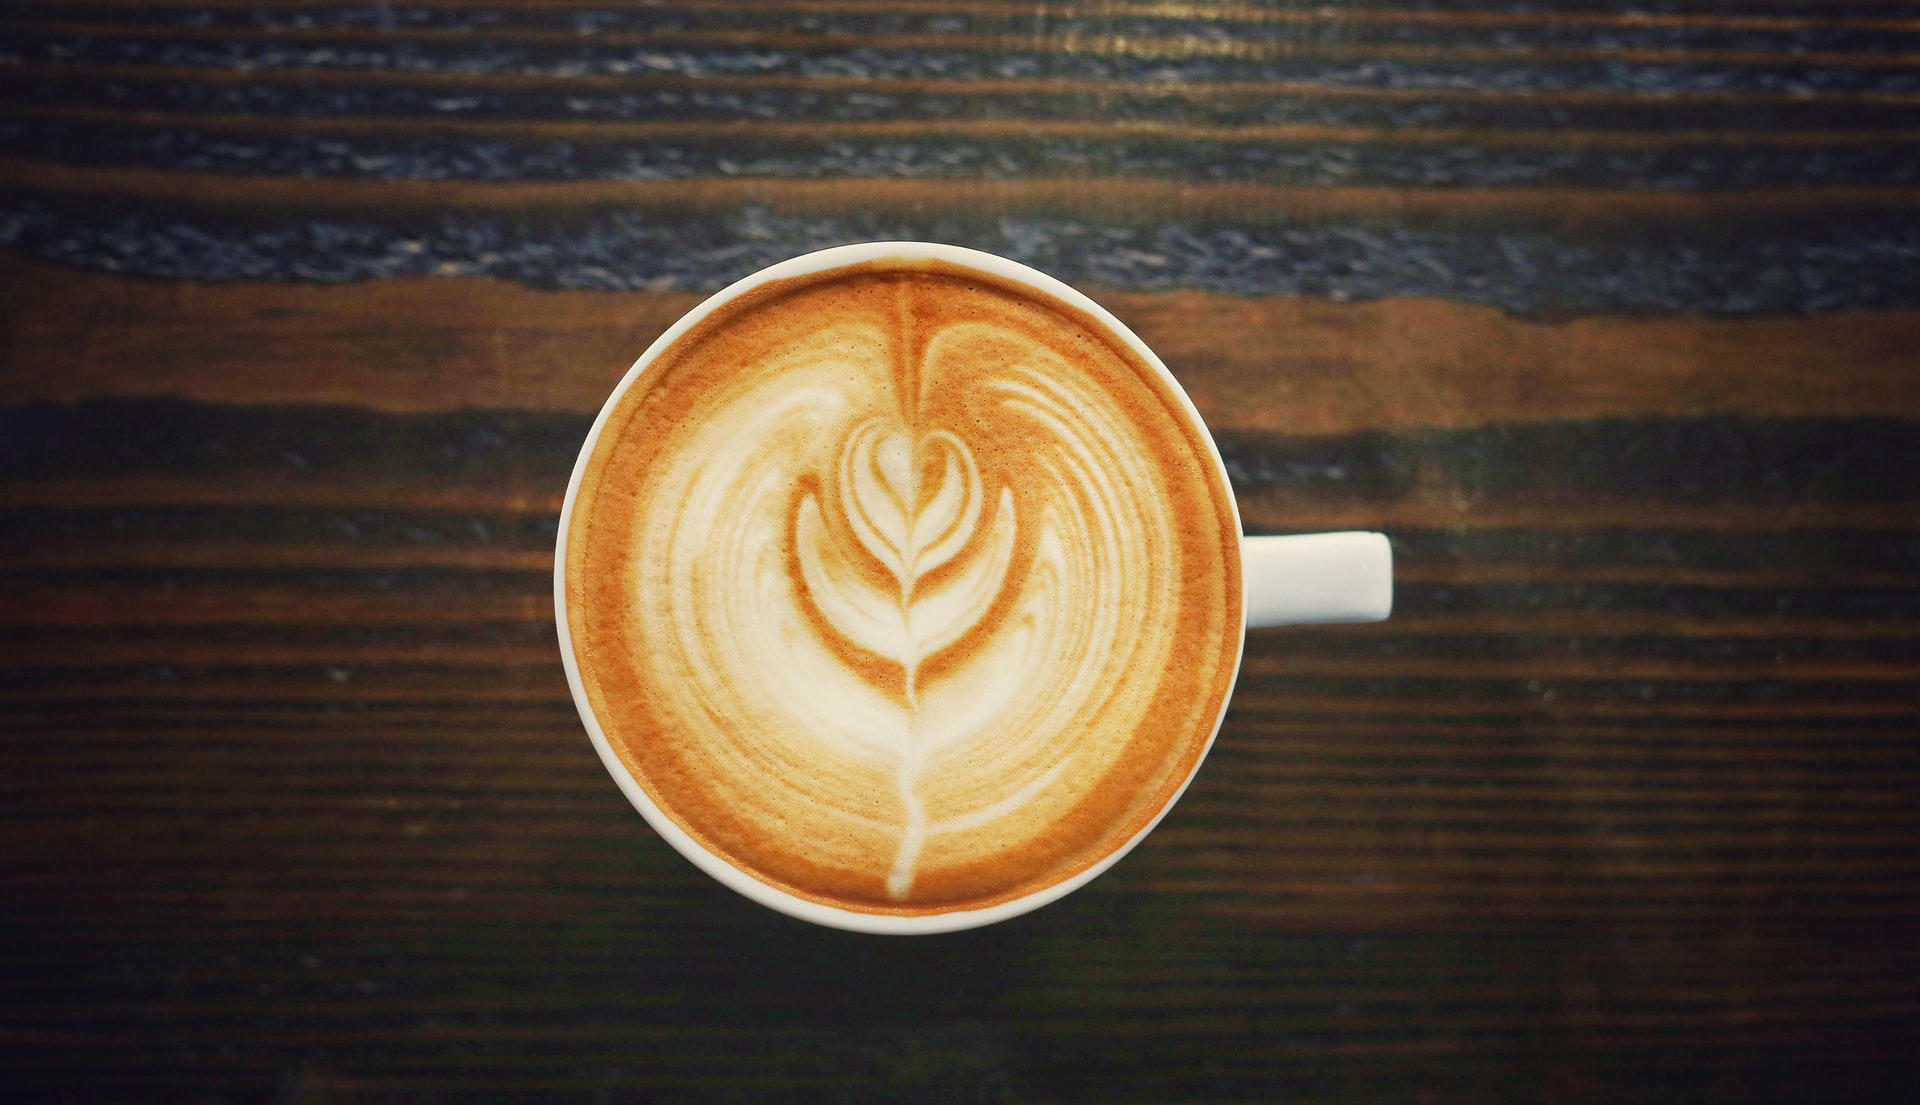 Sip Your Morning Brew at For Five Coffee Roasters